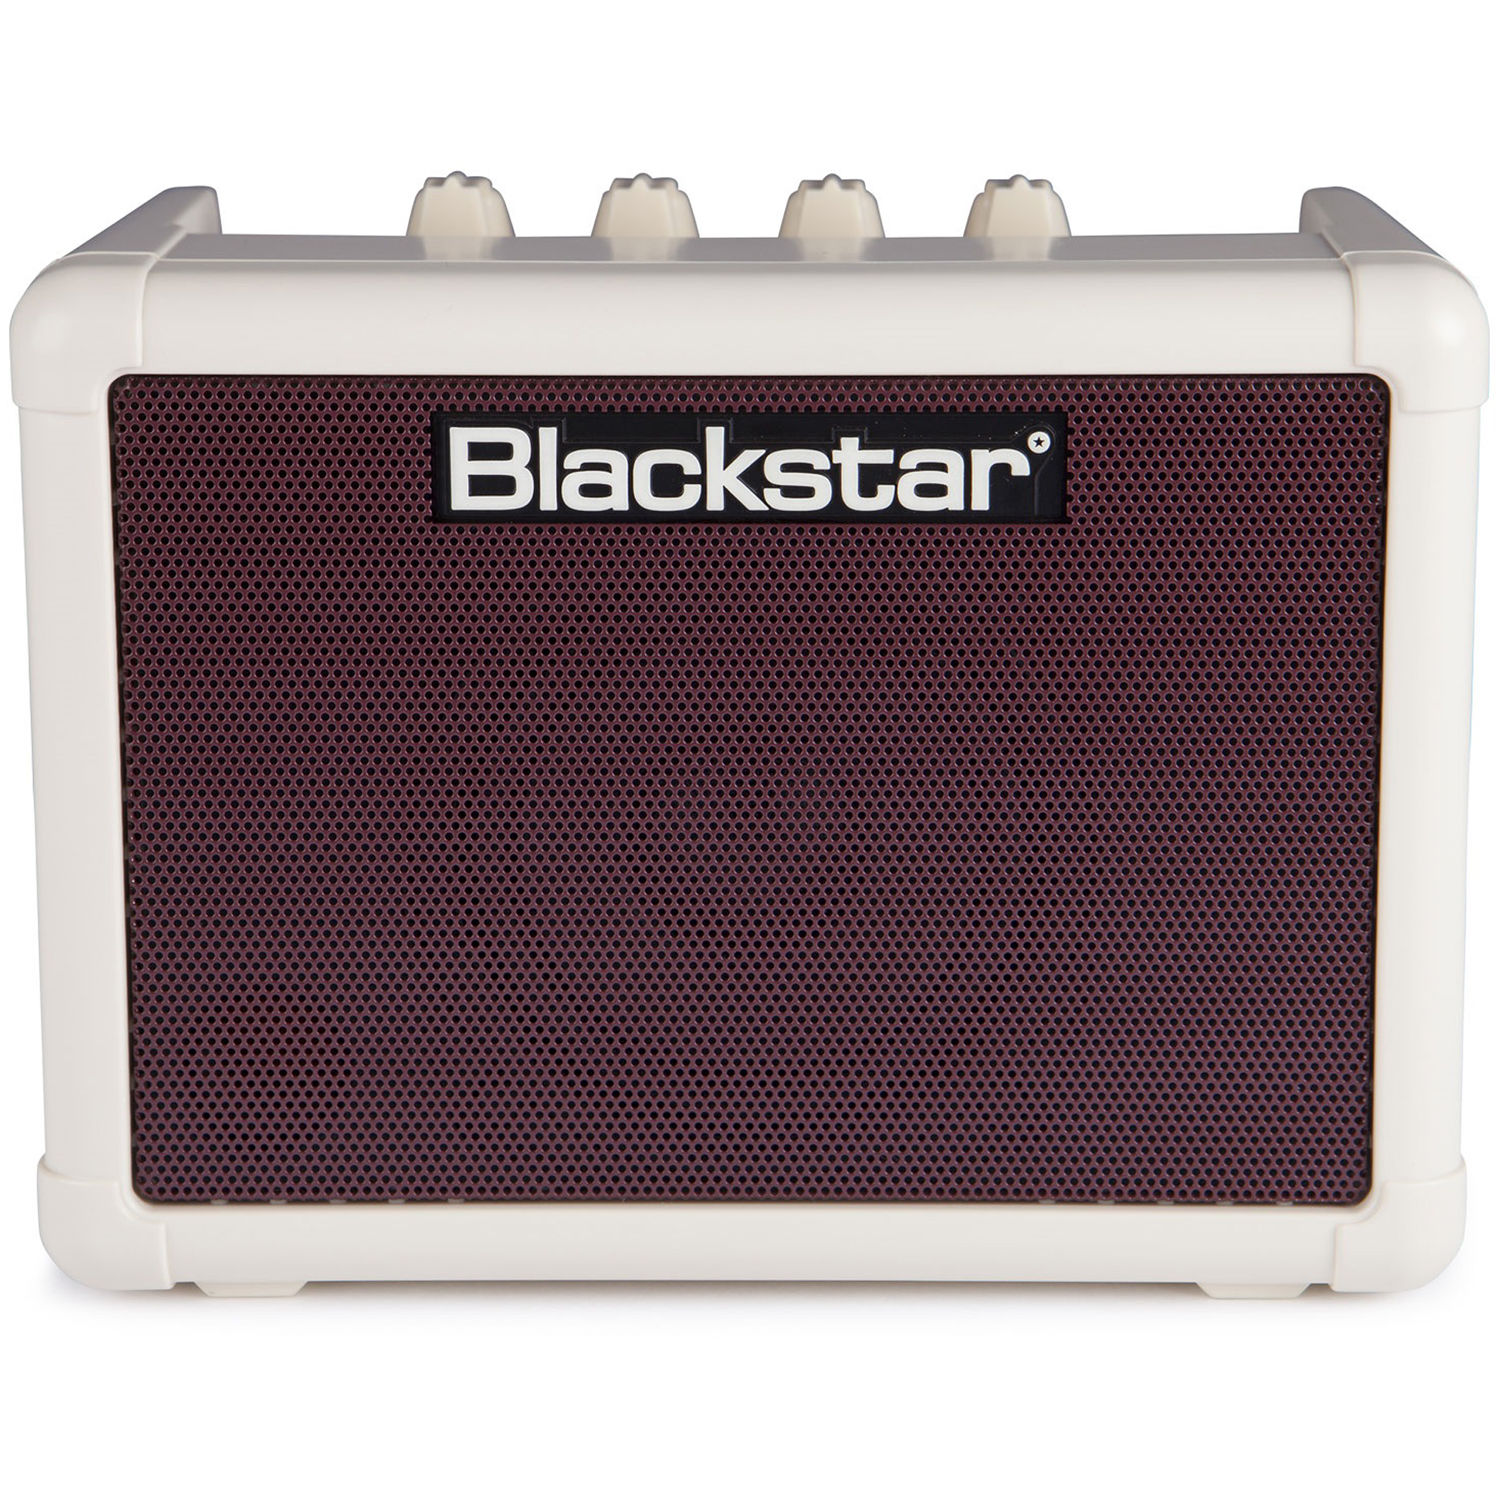 Blackstar FLY Stereo Pack - Battery-Powered Mini Guitar Amp, Extension  Cabinet & Power Supply (Vintage)